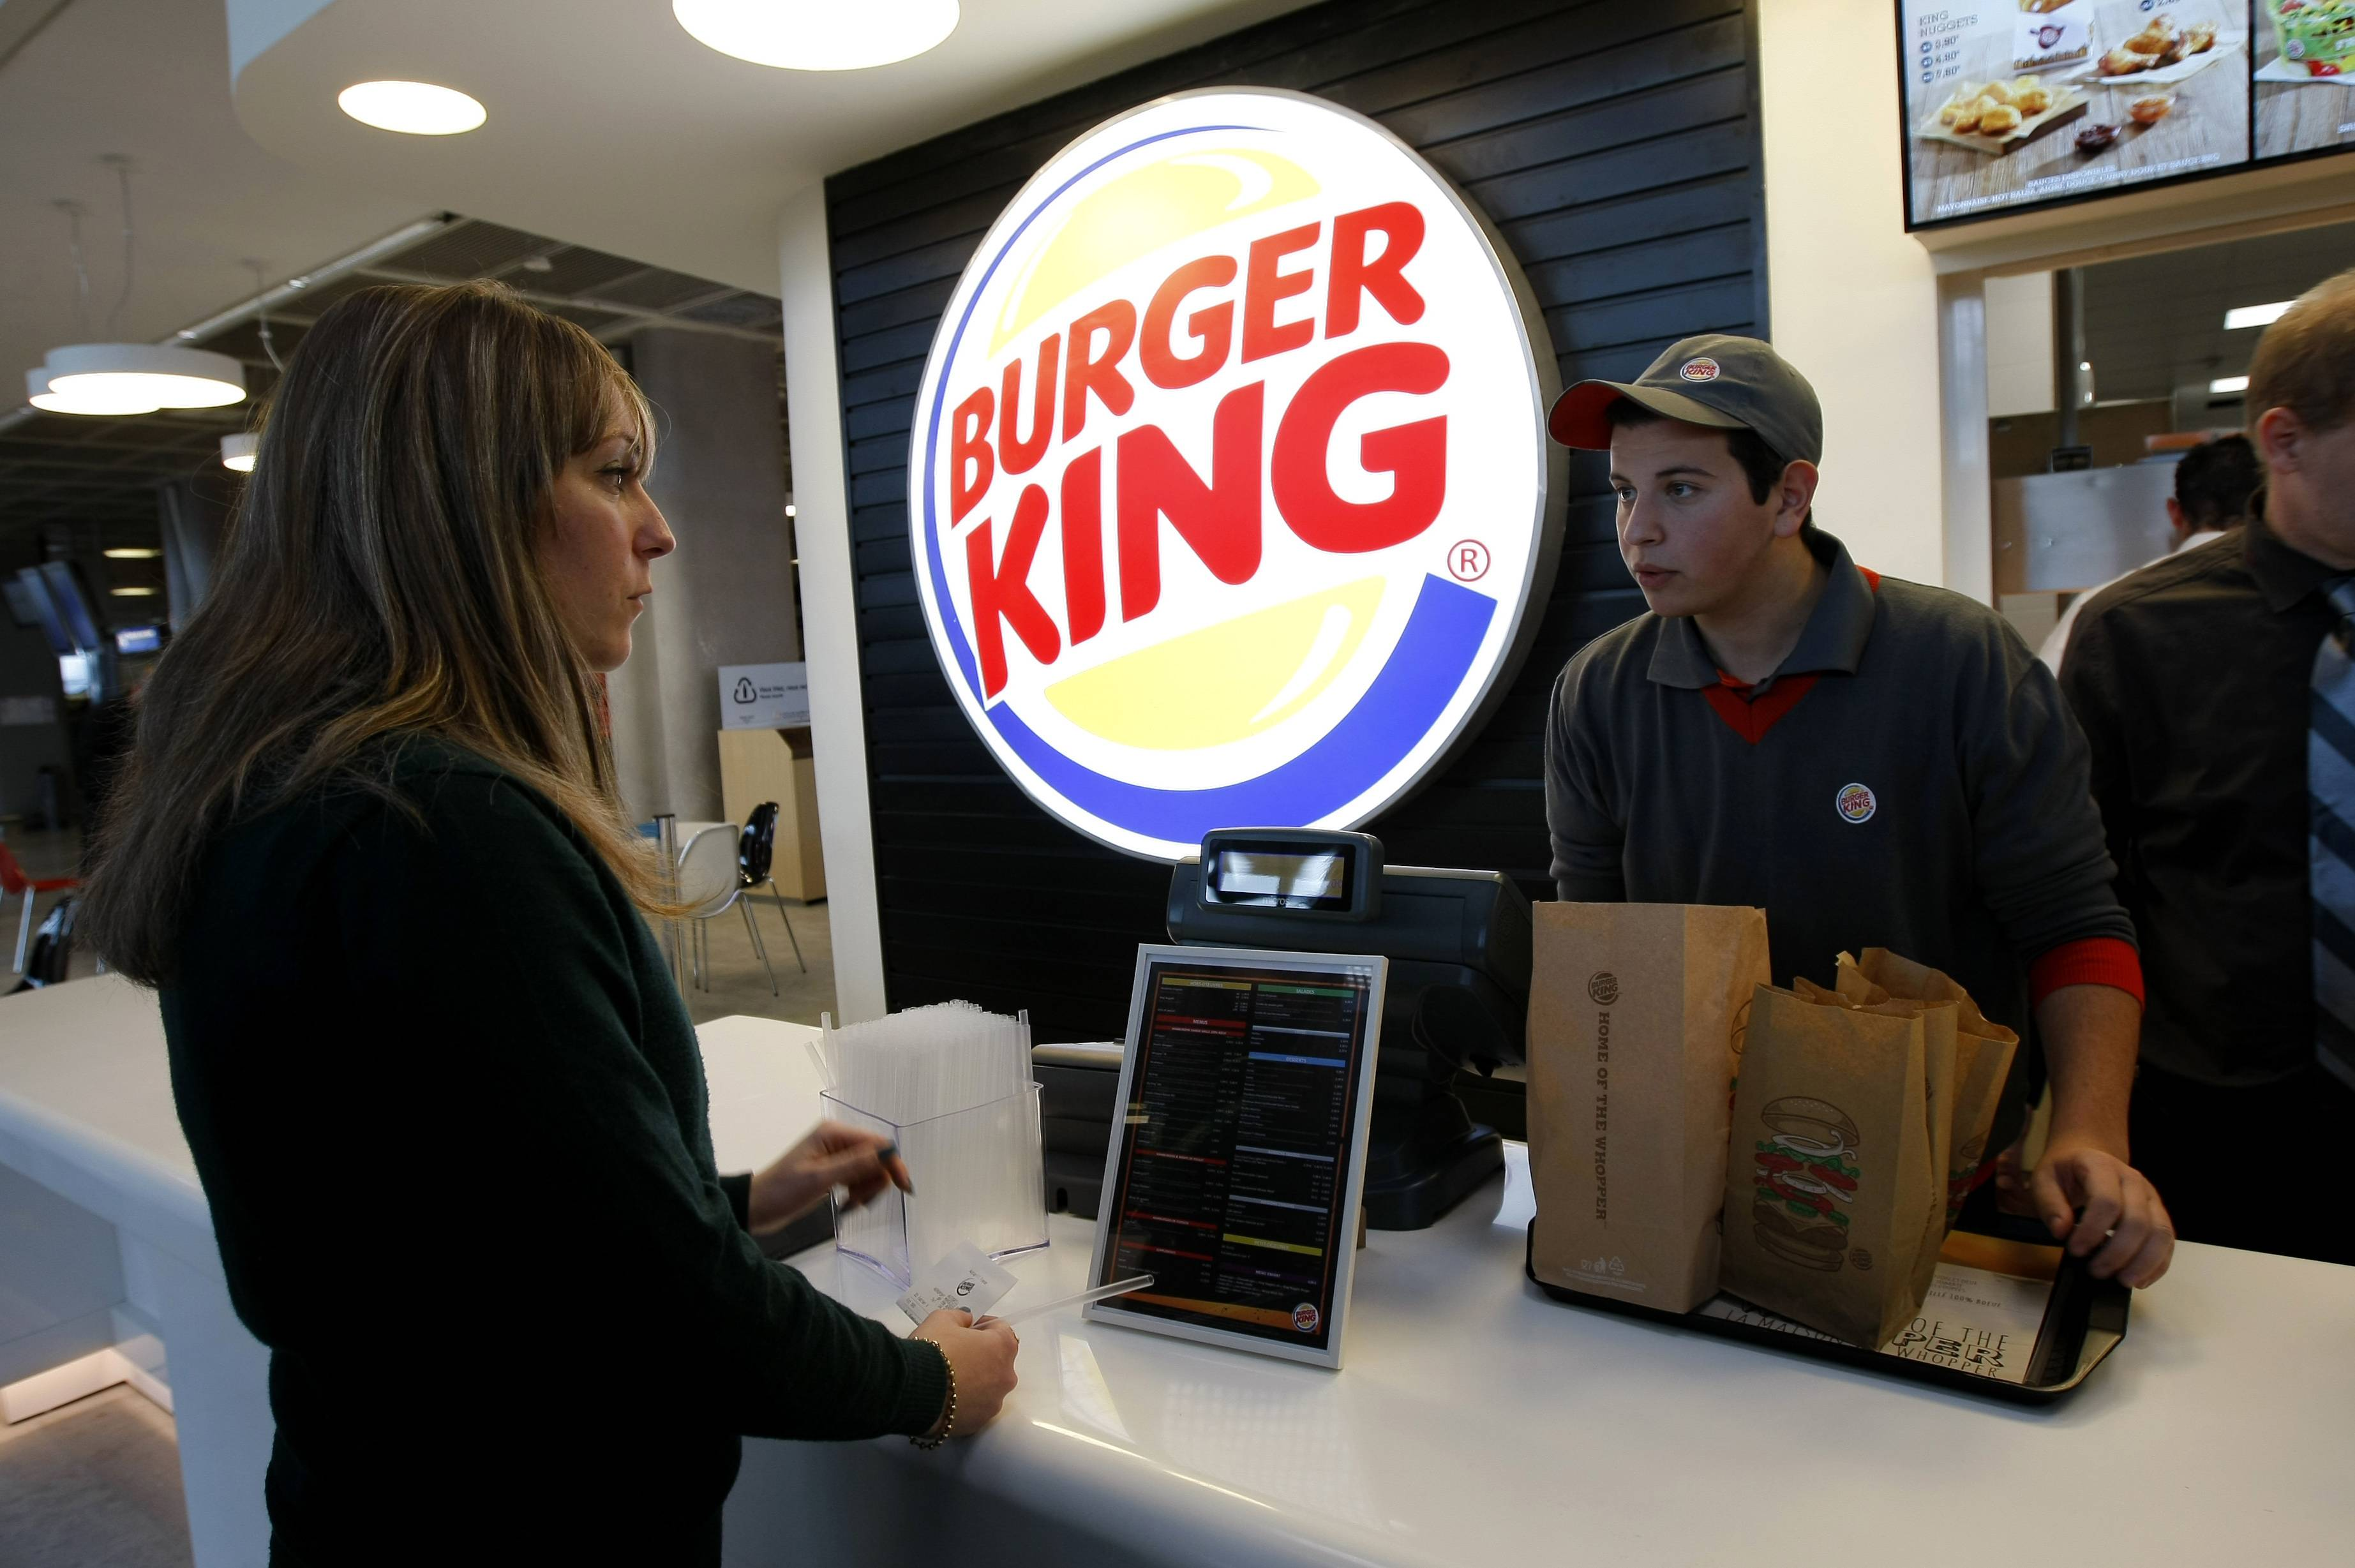 Burger King is in talks to buy Tim Hortons in hopes of creating a new, publicly traded company headquartered in Canada.